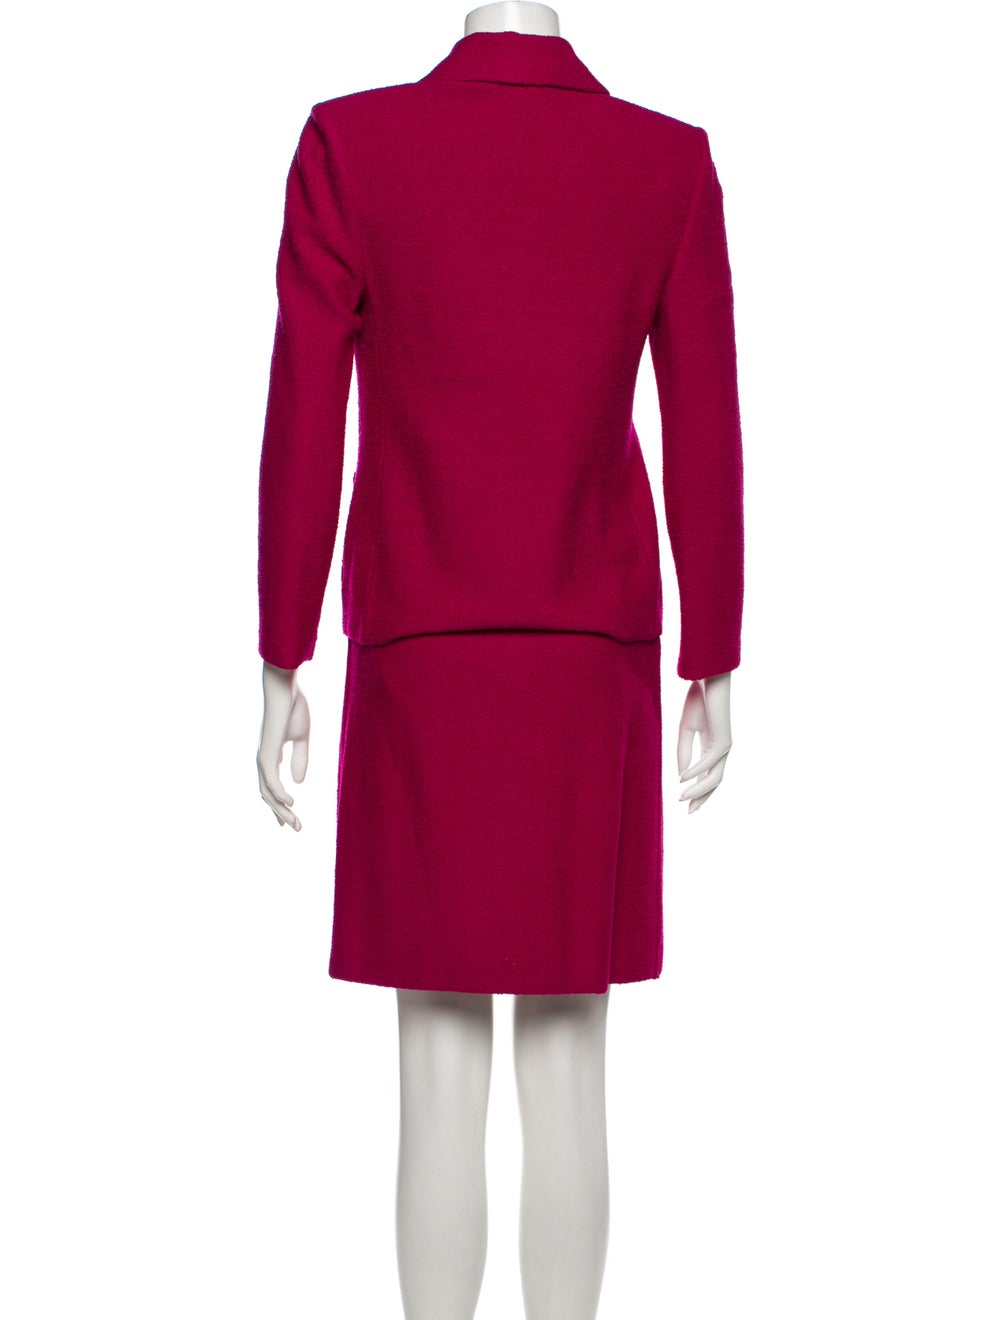 St. John Pleated Accents Skirt Suit Pink - image 3